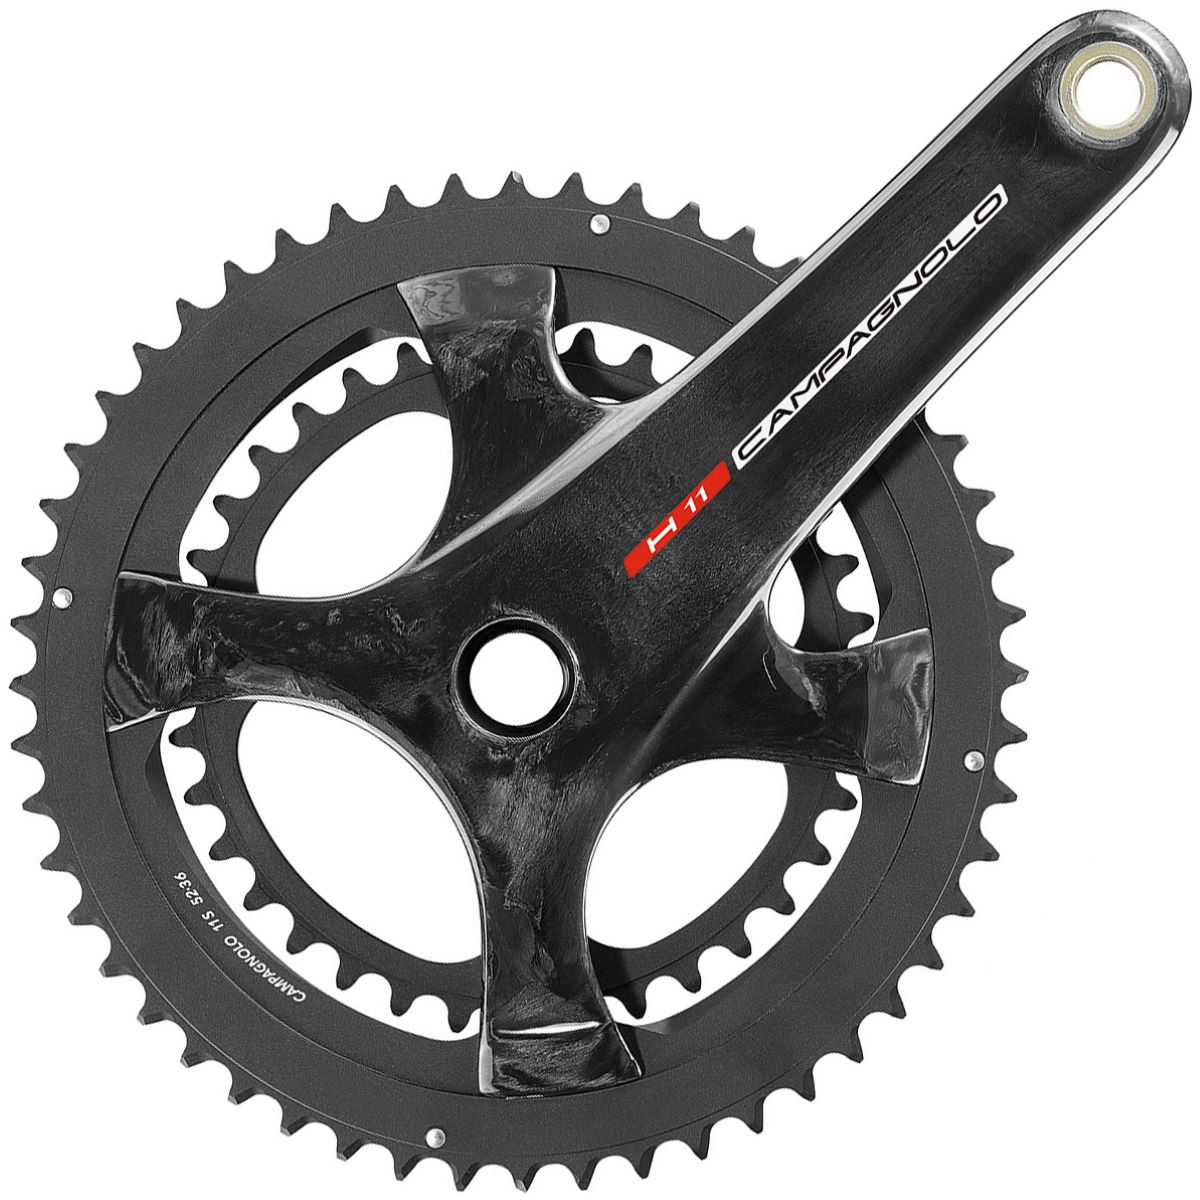 Campagnolo Campagnolo H11 Ultra Torque 11 Speed Chainset   Chainsets